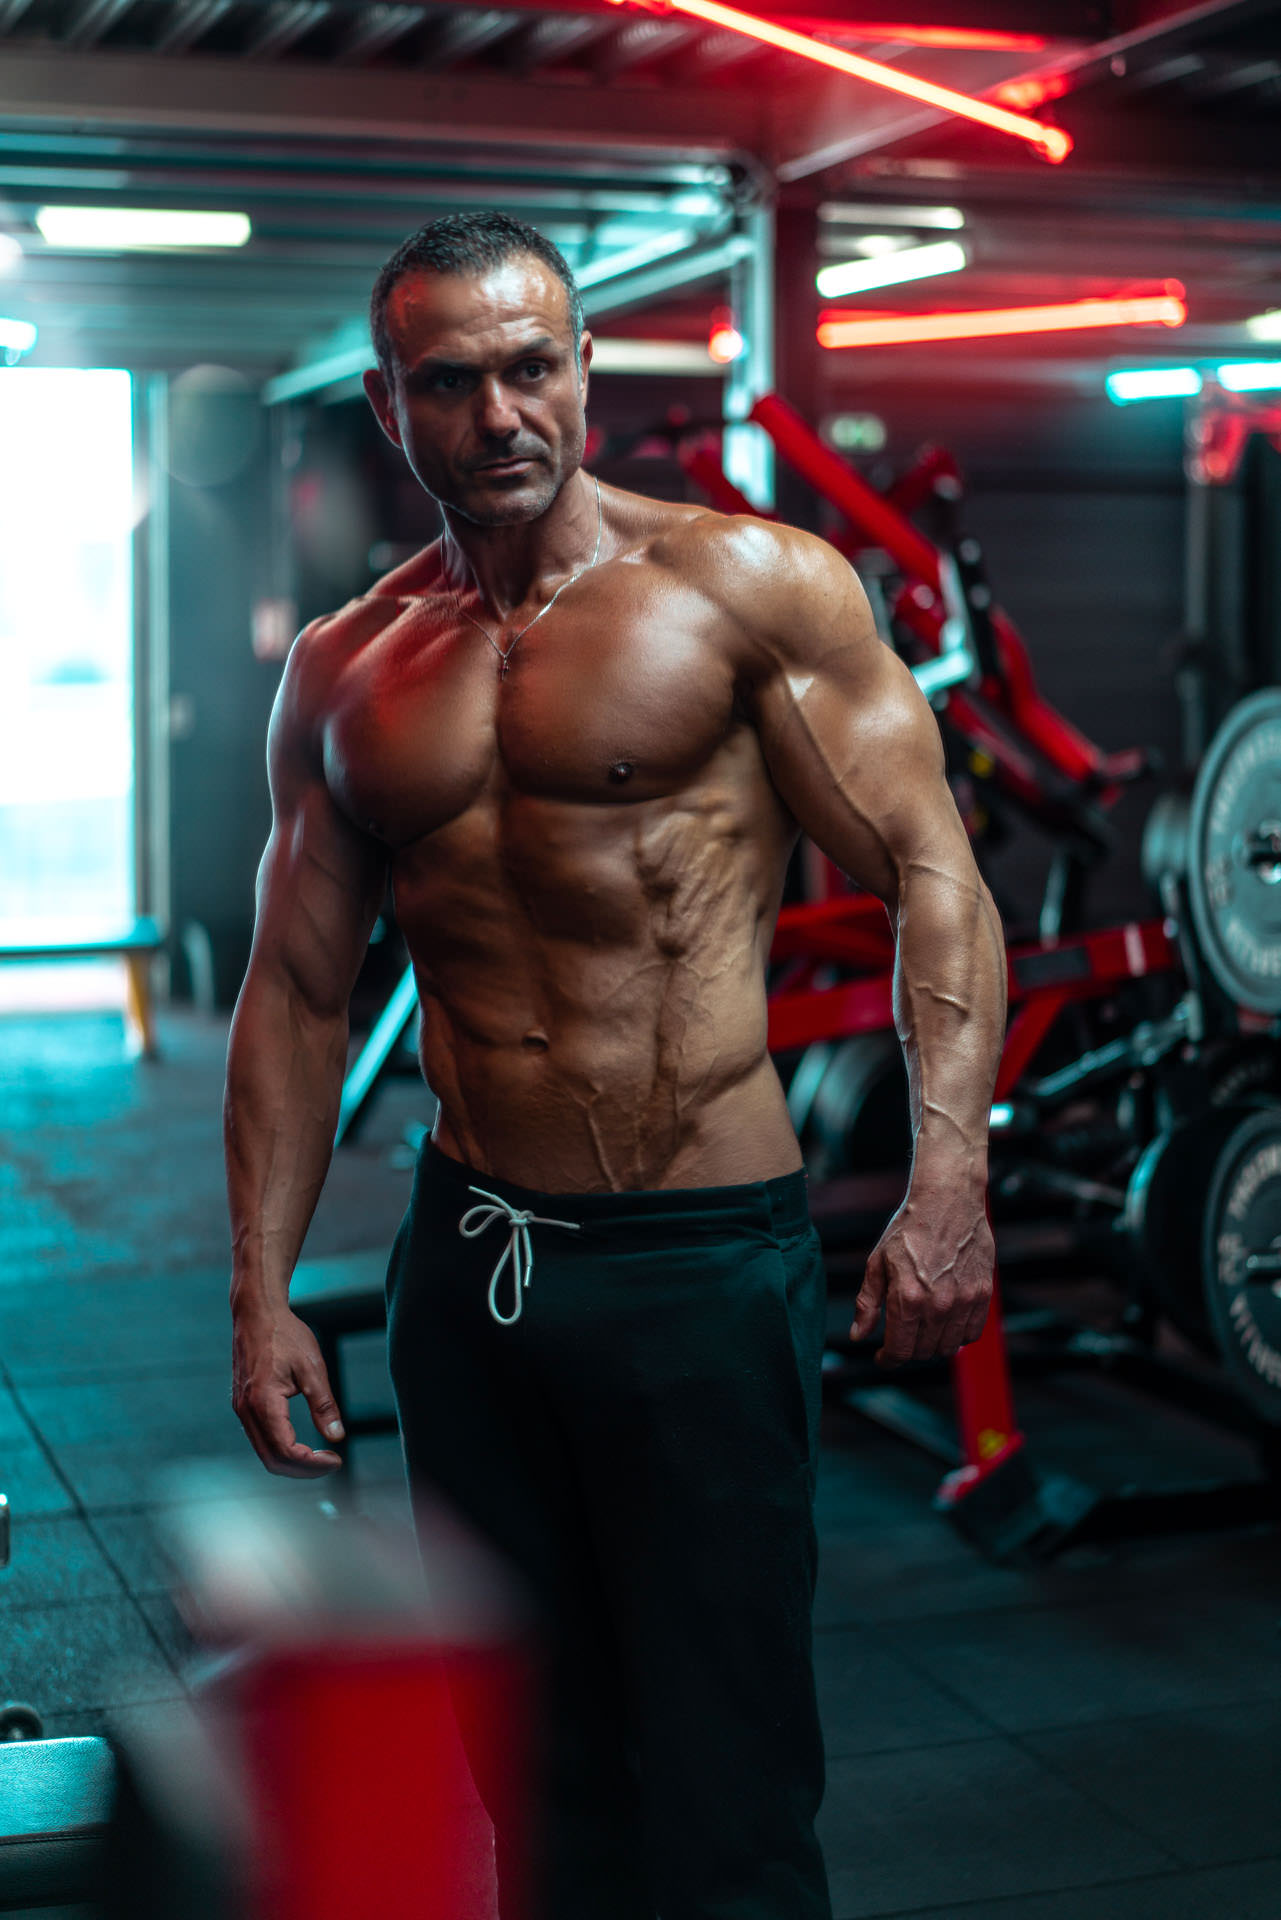 2020-03-15 - Enzo - Muscle Factory - 01562 - 1920px